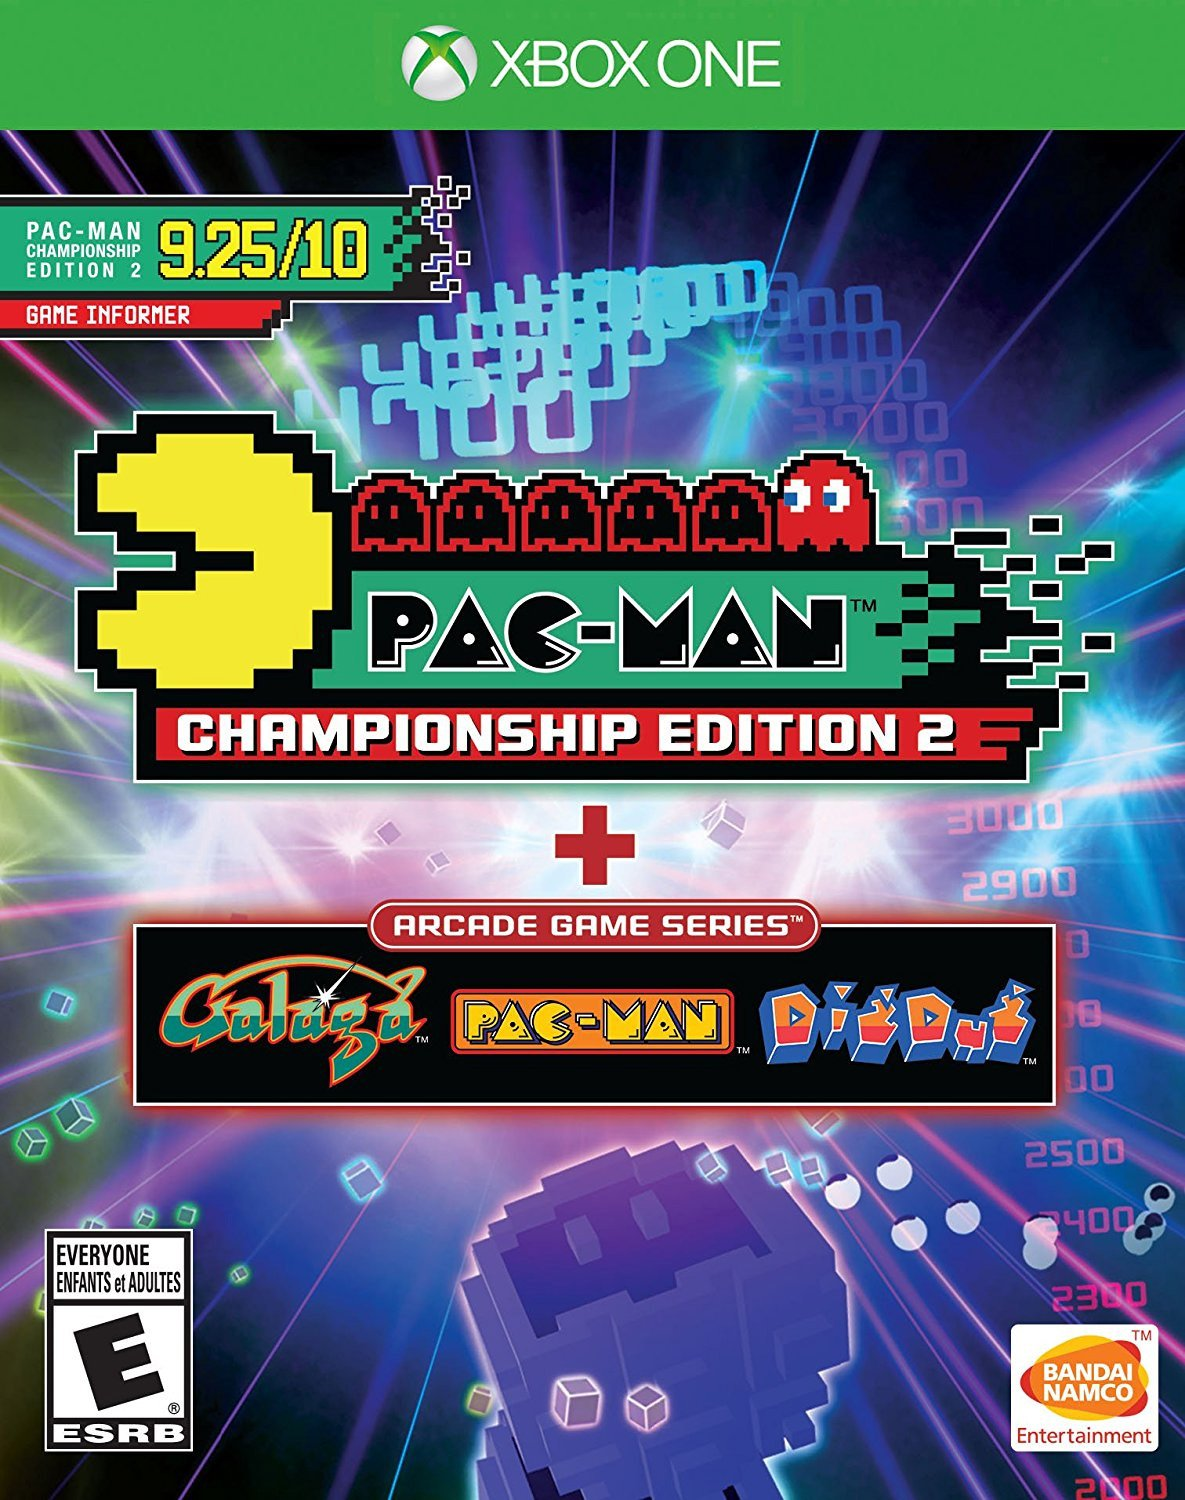 Pac Man Championship Edition 2 Arcade Game Series Ps4 Sonic Forces Day One R1 Eng Image Unavailable